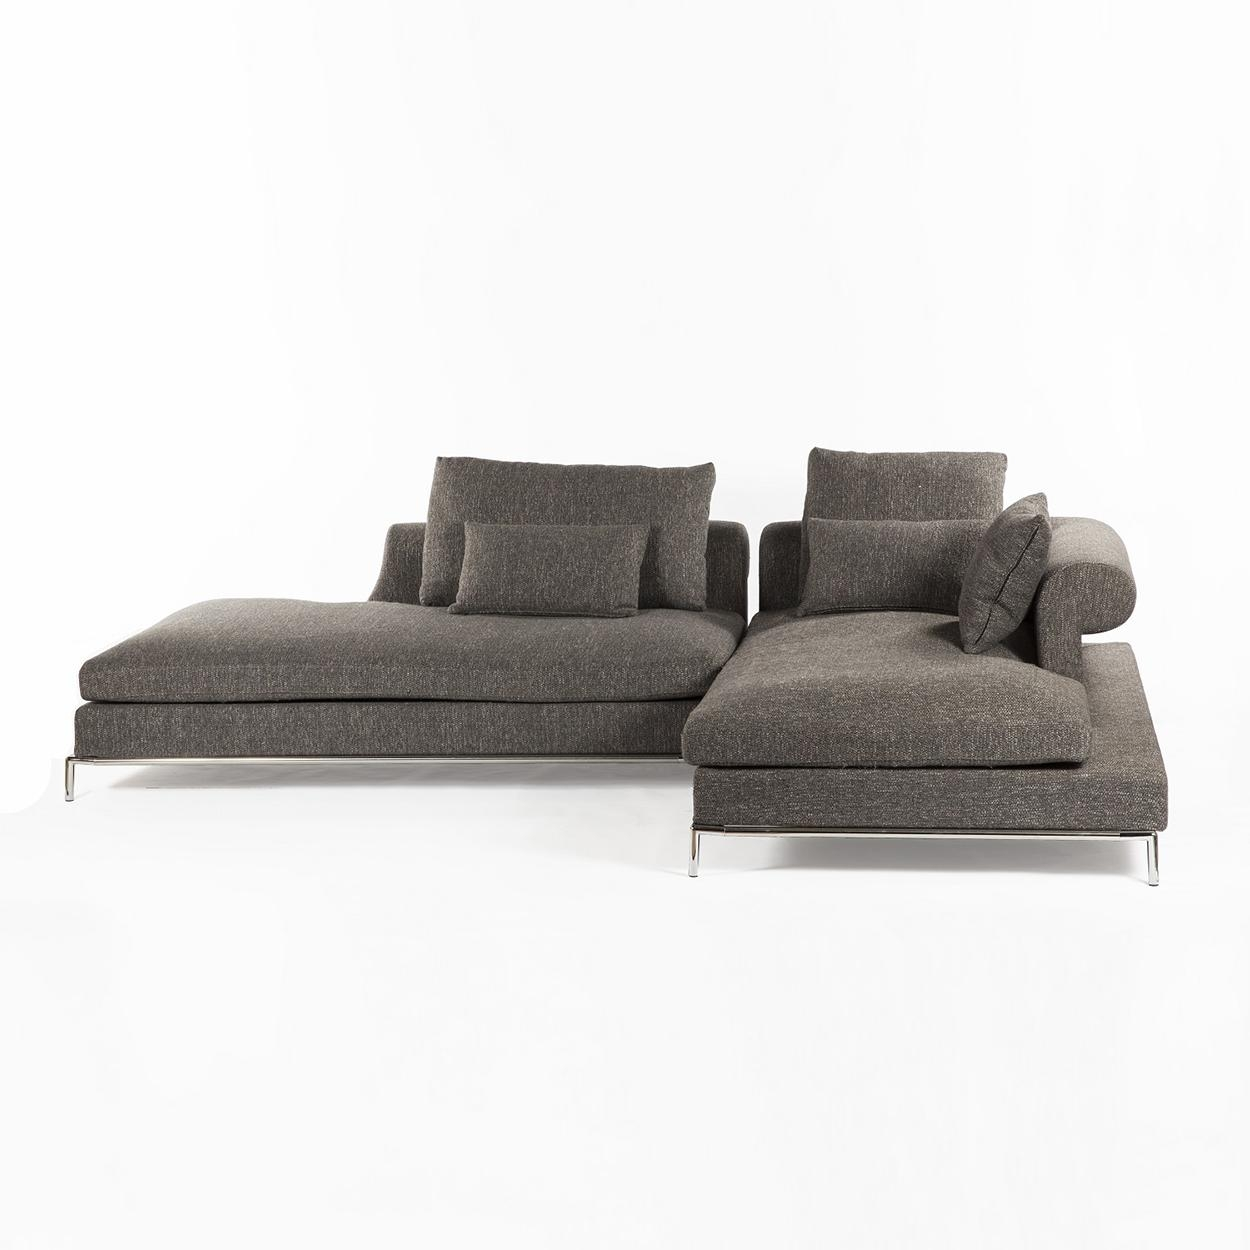 Mid Century Sofas, Modern Sectional Sofas, Modern For Media Sofa Sectionals (Image 14 of 20)